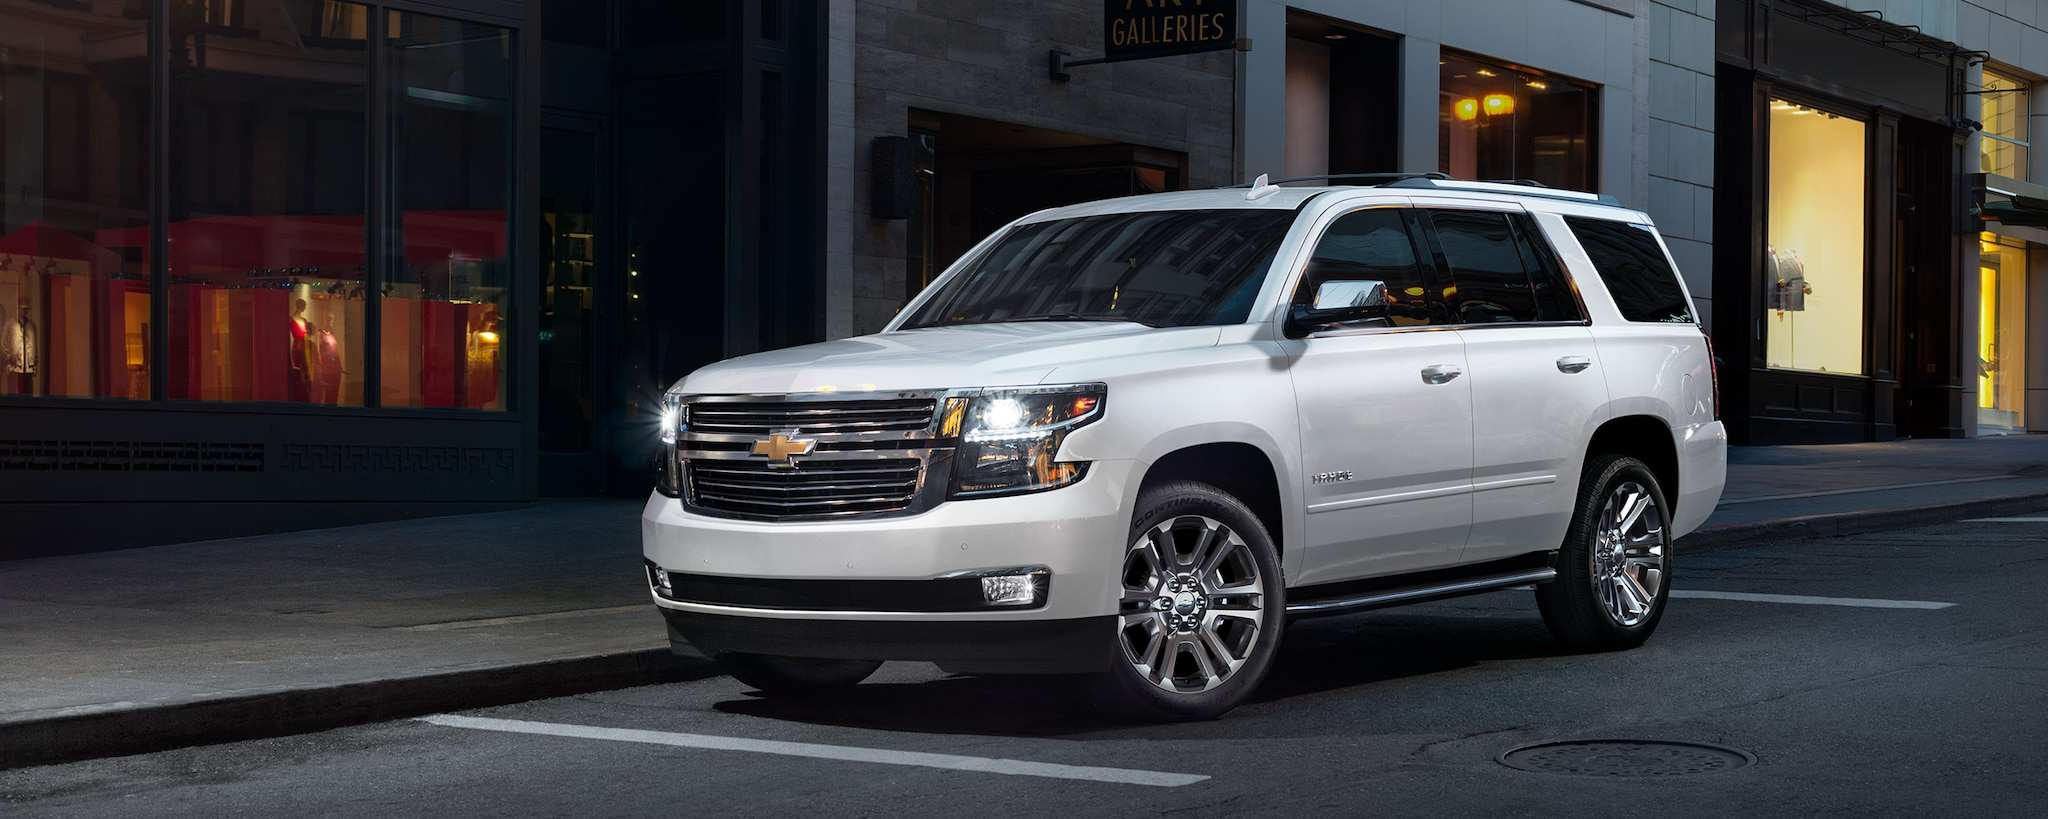 86 The 2020 Chevrolet Tahoe Release Date Exterior and Interior with 2020 Chevrolet Tahoe Release Date